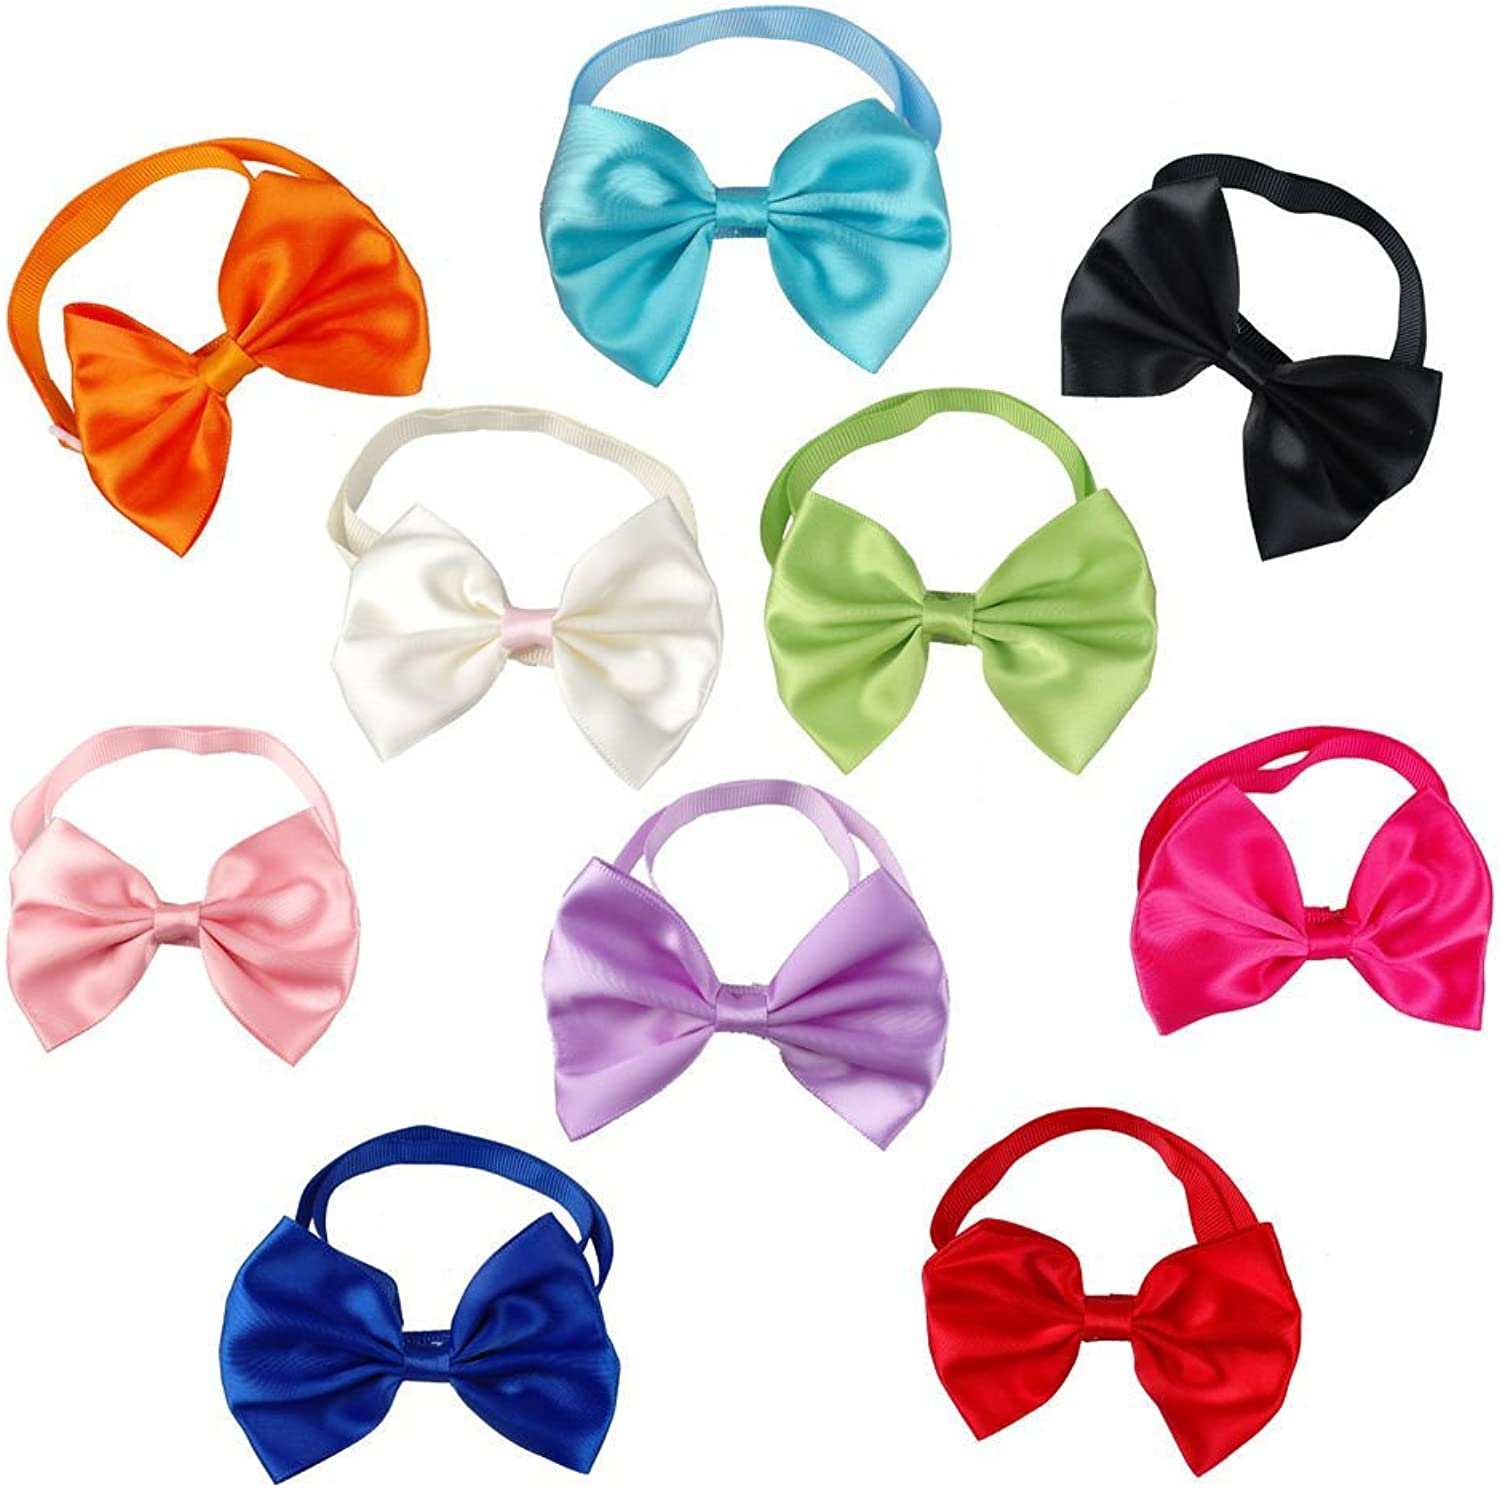 PET SHOW Pet Cat Dog Neck Bow Ties Collar Bowties Plain Wedding Grooming Accessories color Assorted Pack of 50